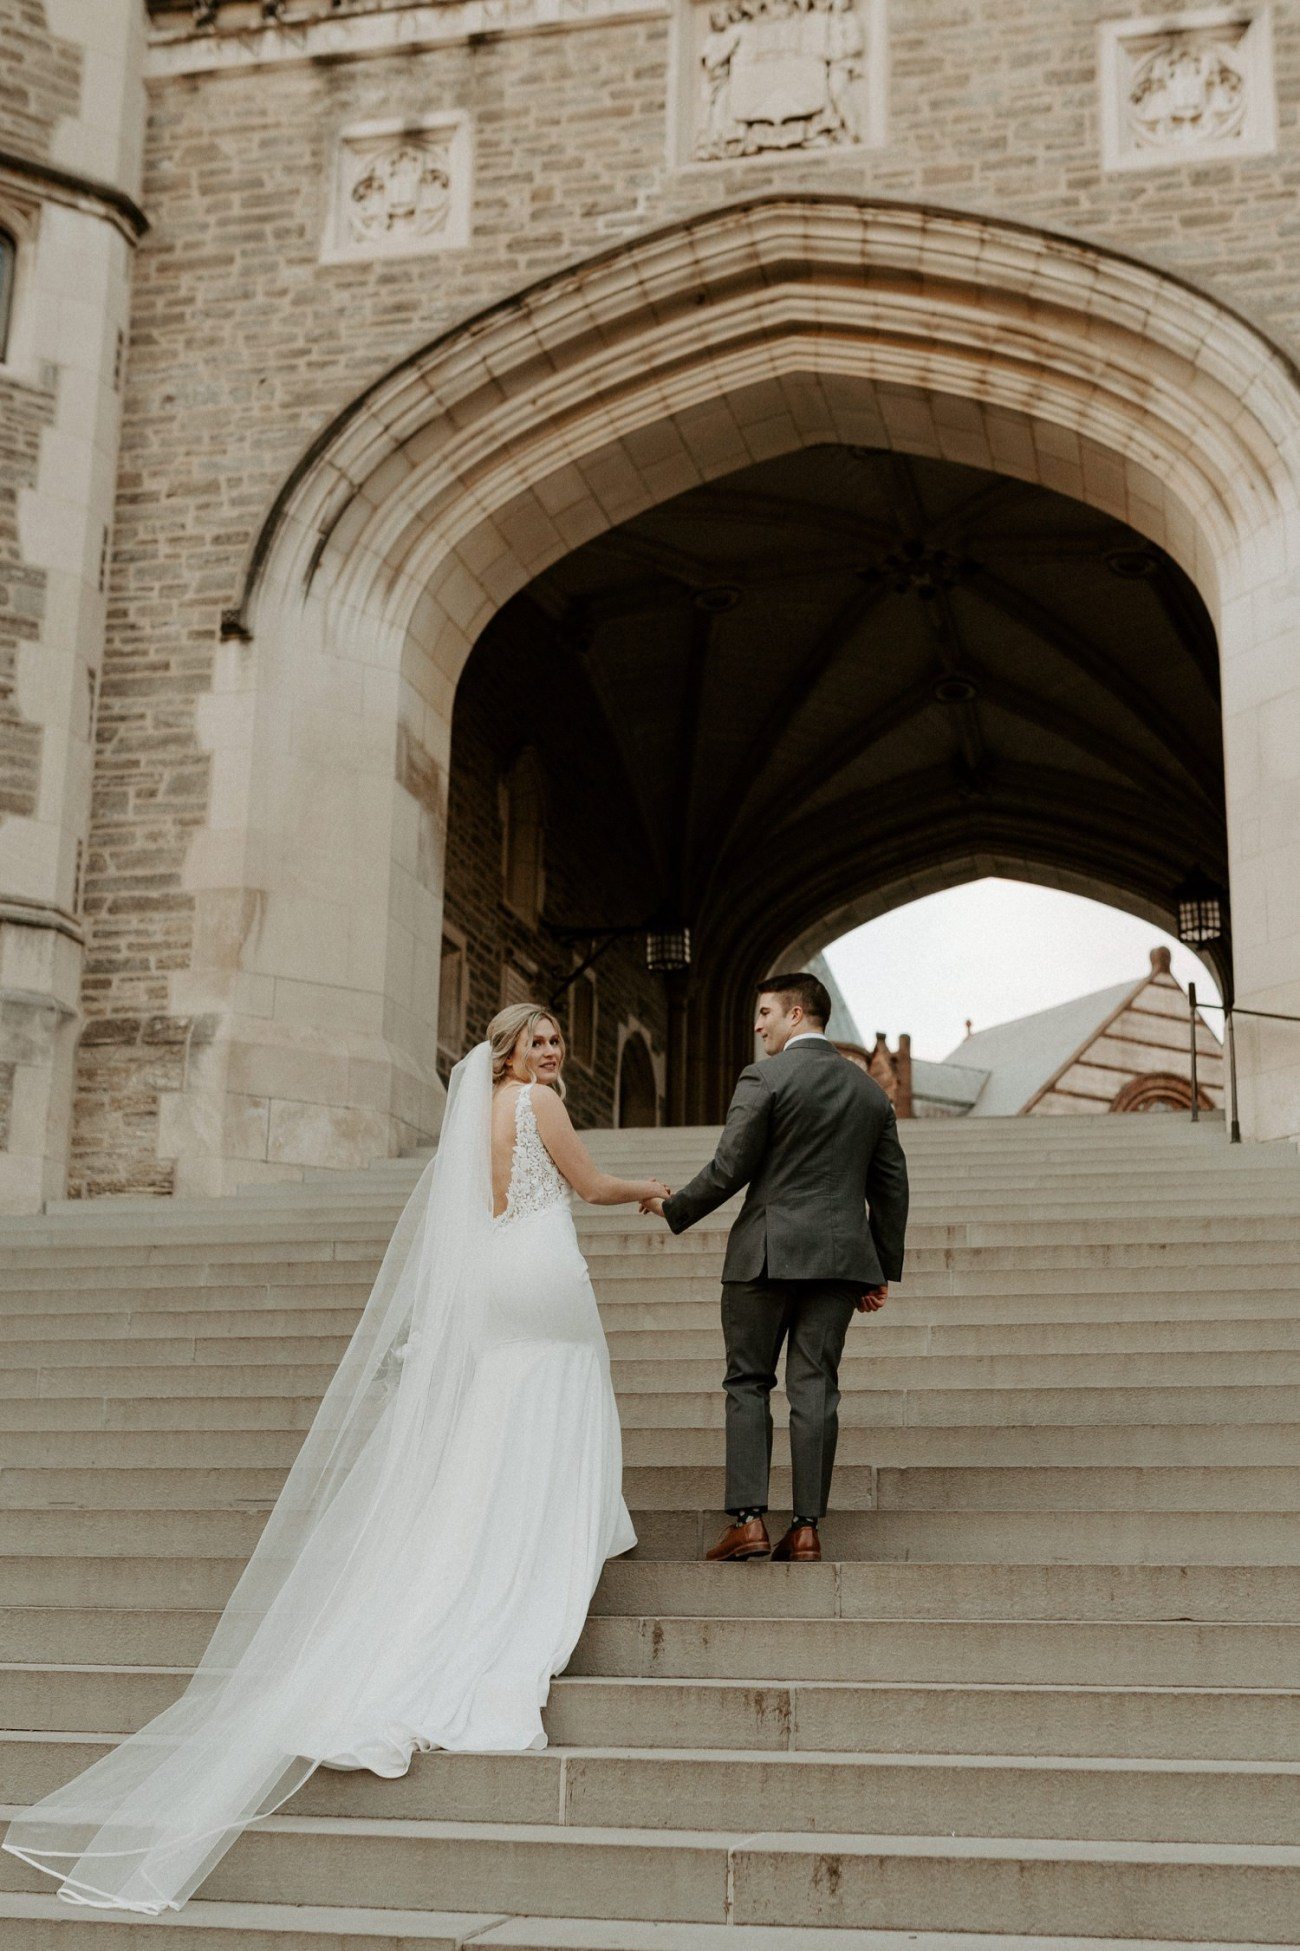 Princeton University Wedding Elopement New Jersey Wedding Photographer Anais Possamai Photography 67